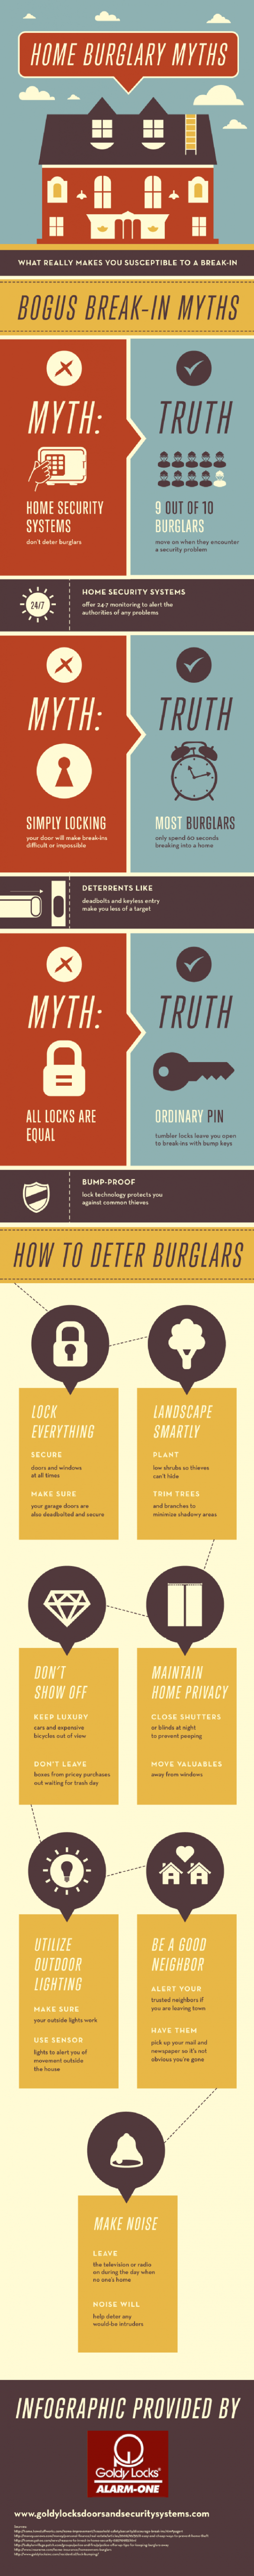 Home Burglary Myths: What Really Makes You Susceptible to a Break-In